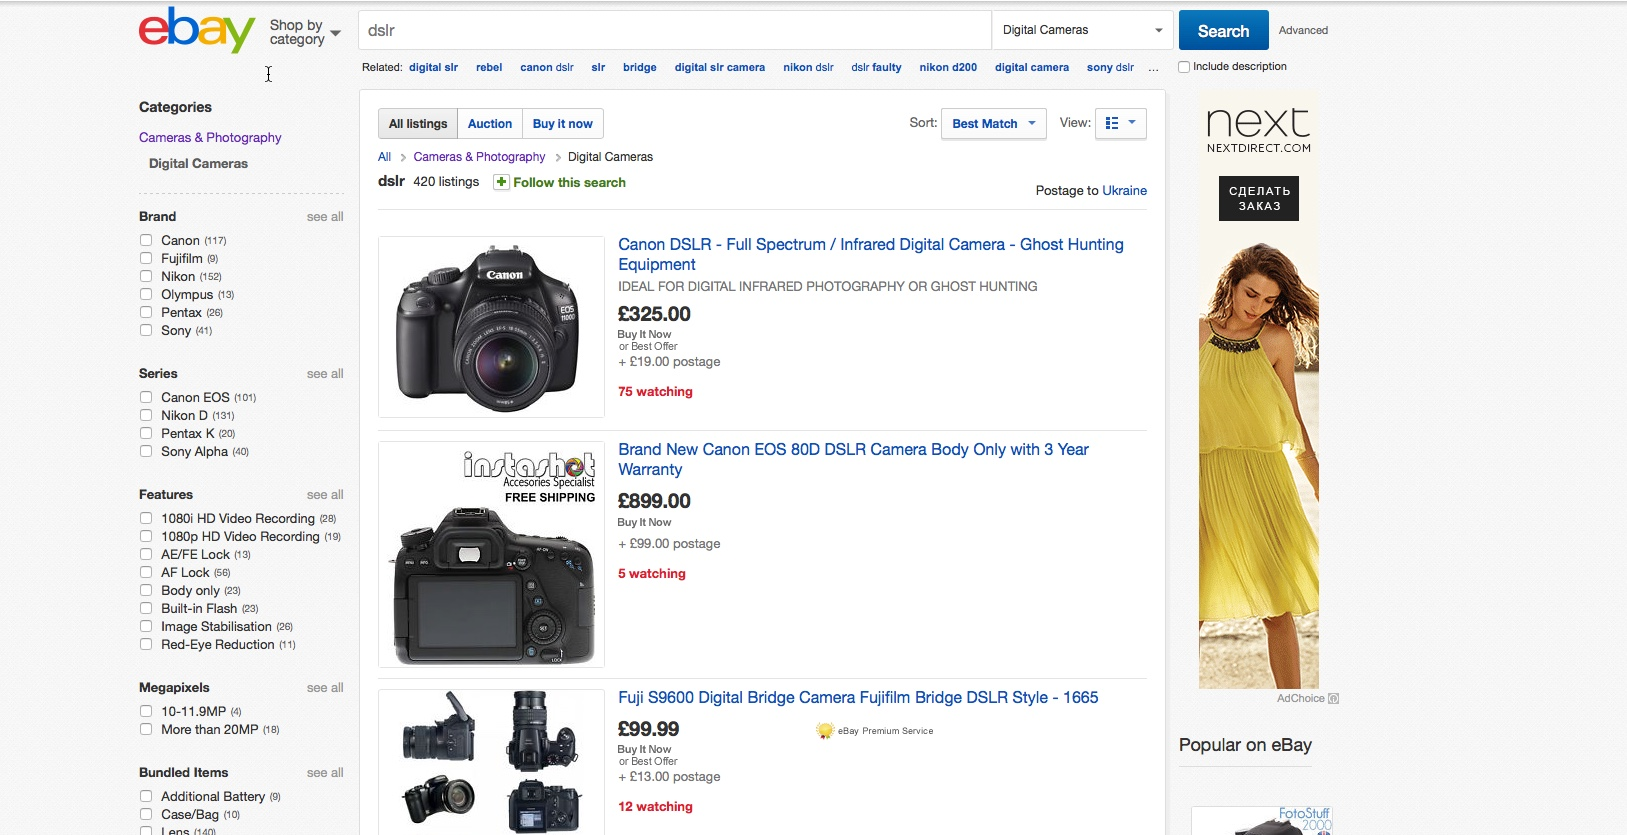 eBay kick started the used camera revolution